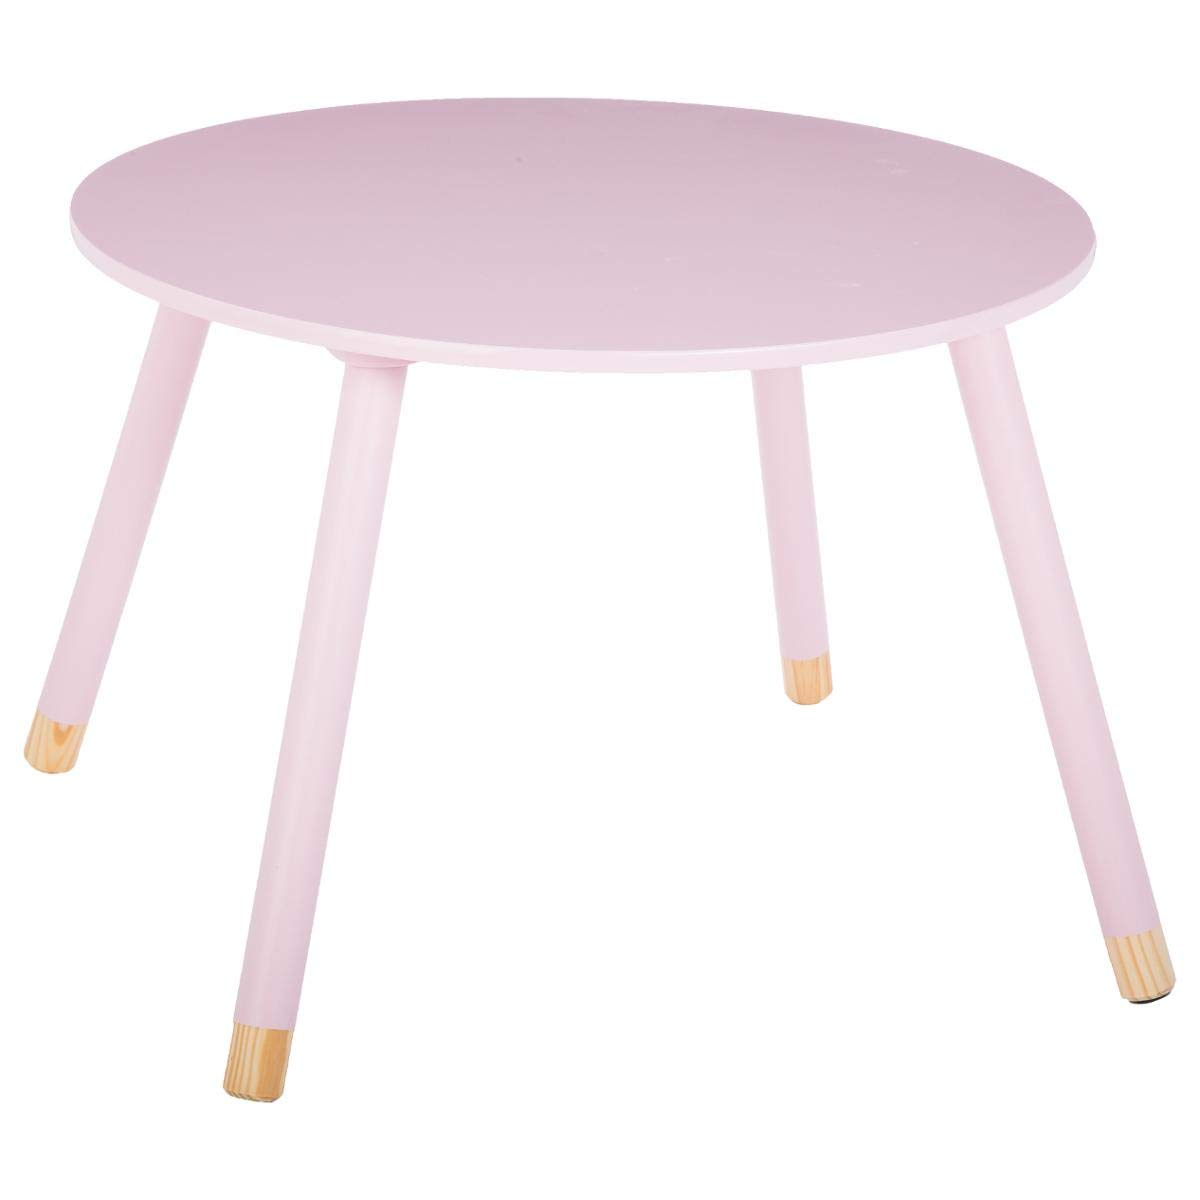 Atmosphera Wooden round table for children - Colour PINK